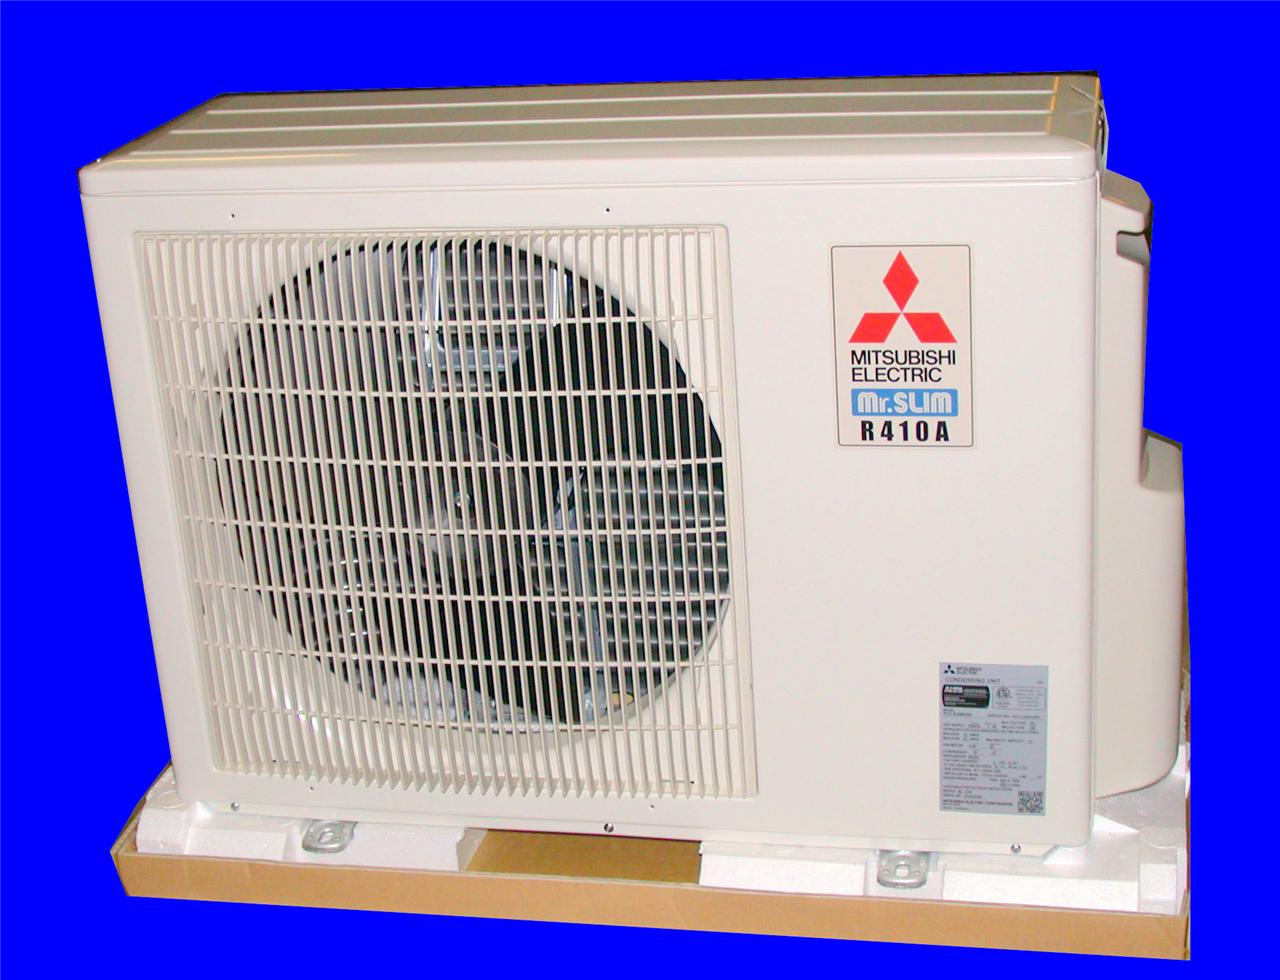 #0000CC NEW MITSUBISHI WALL SINGLE ZONE MINI SPLIT 18 000 BTU AC  Highly Rated 5449 Mitsubishi Mini Split Unit wallpapers with 1280x980 px on helpvideos.info - Air Conditioners, Air Coolers and more